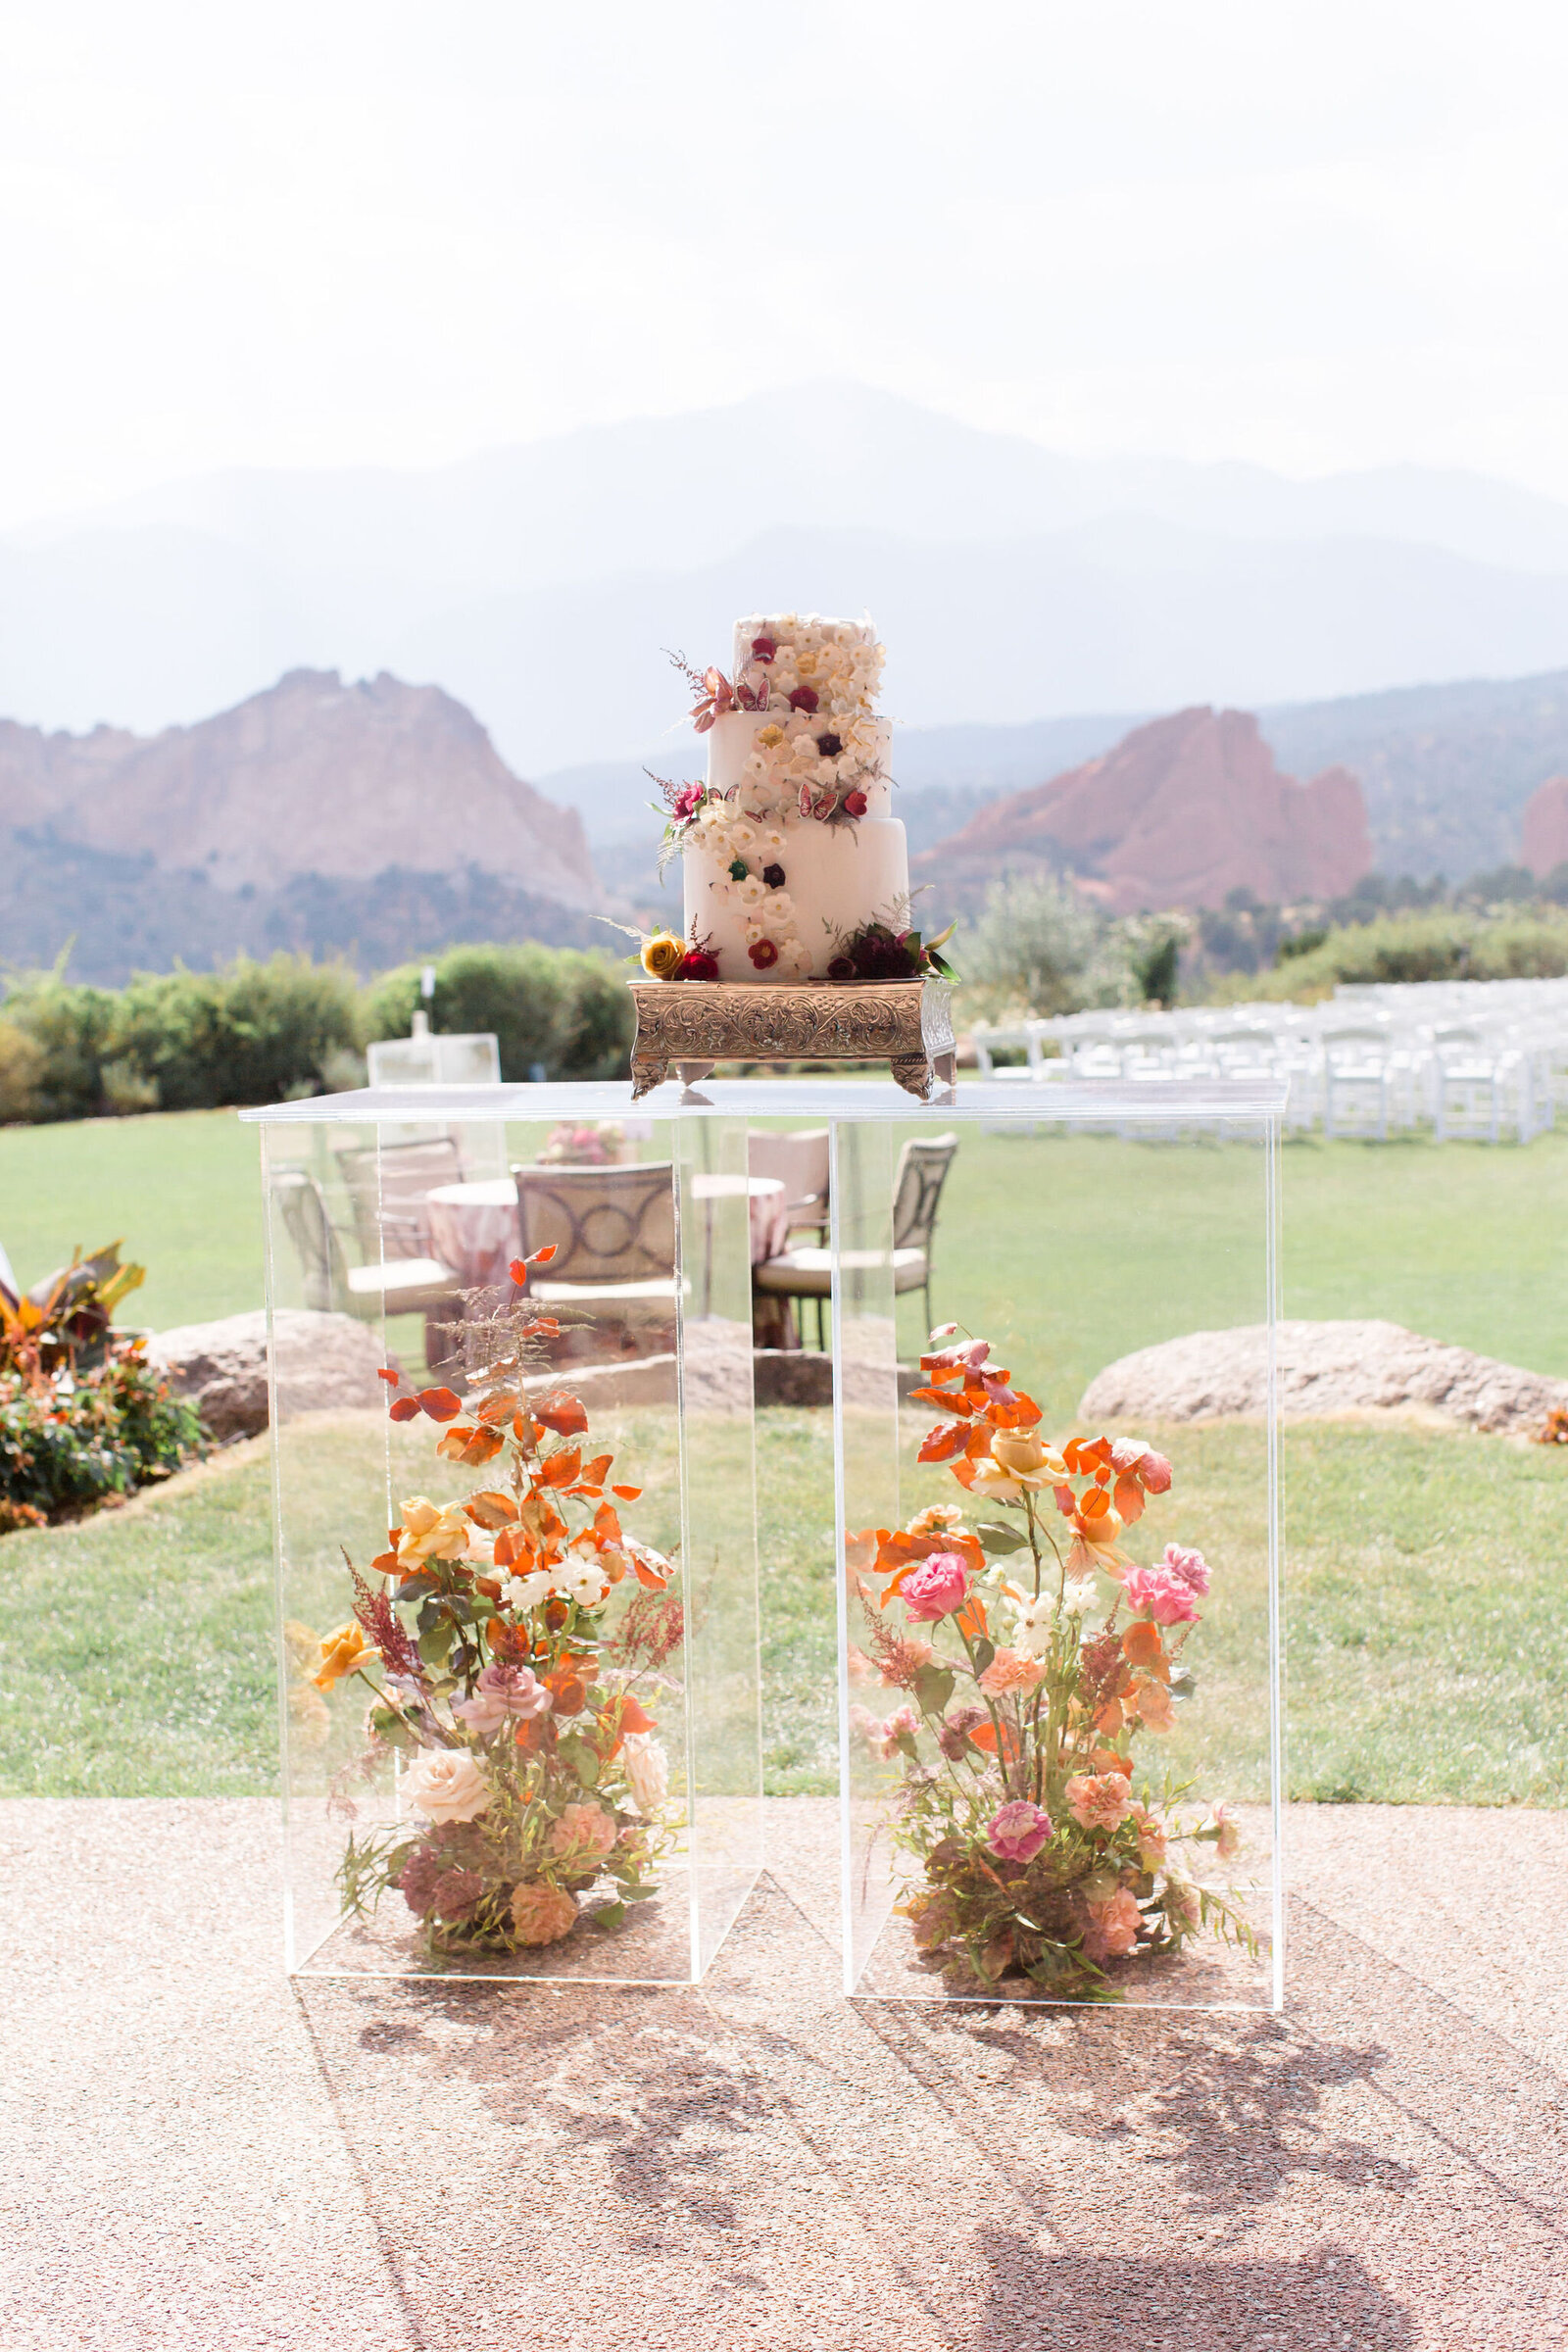 MichelewithoneLColoradoWeddingBrandPhotographer-213